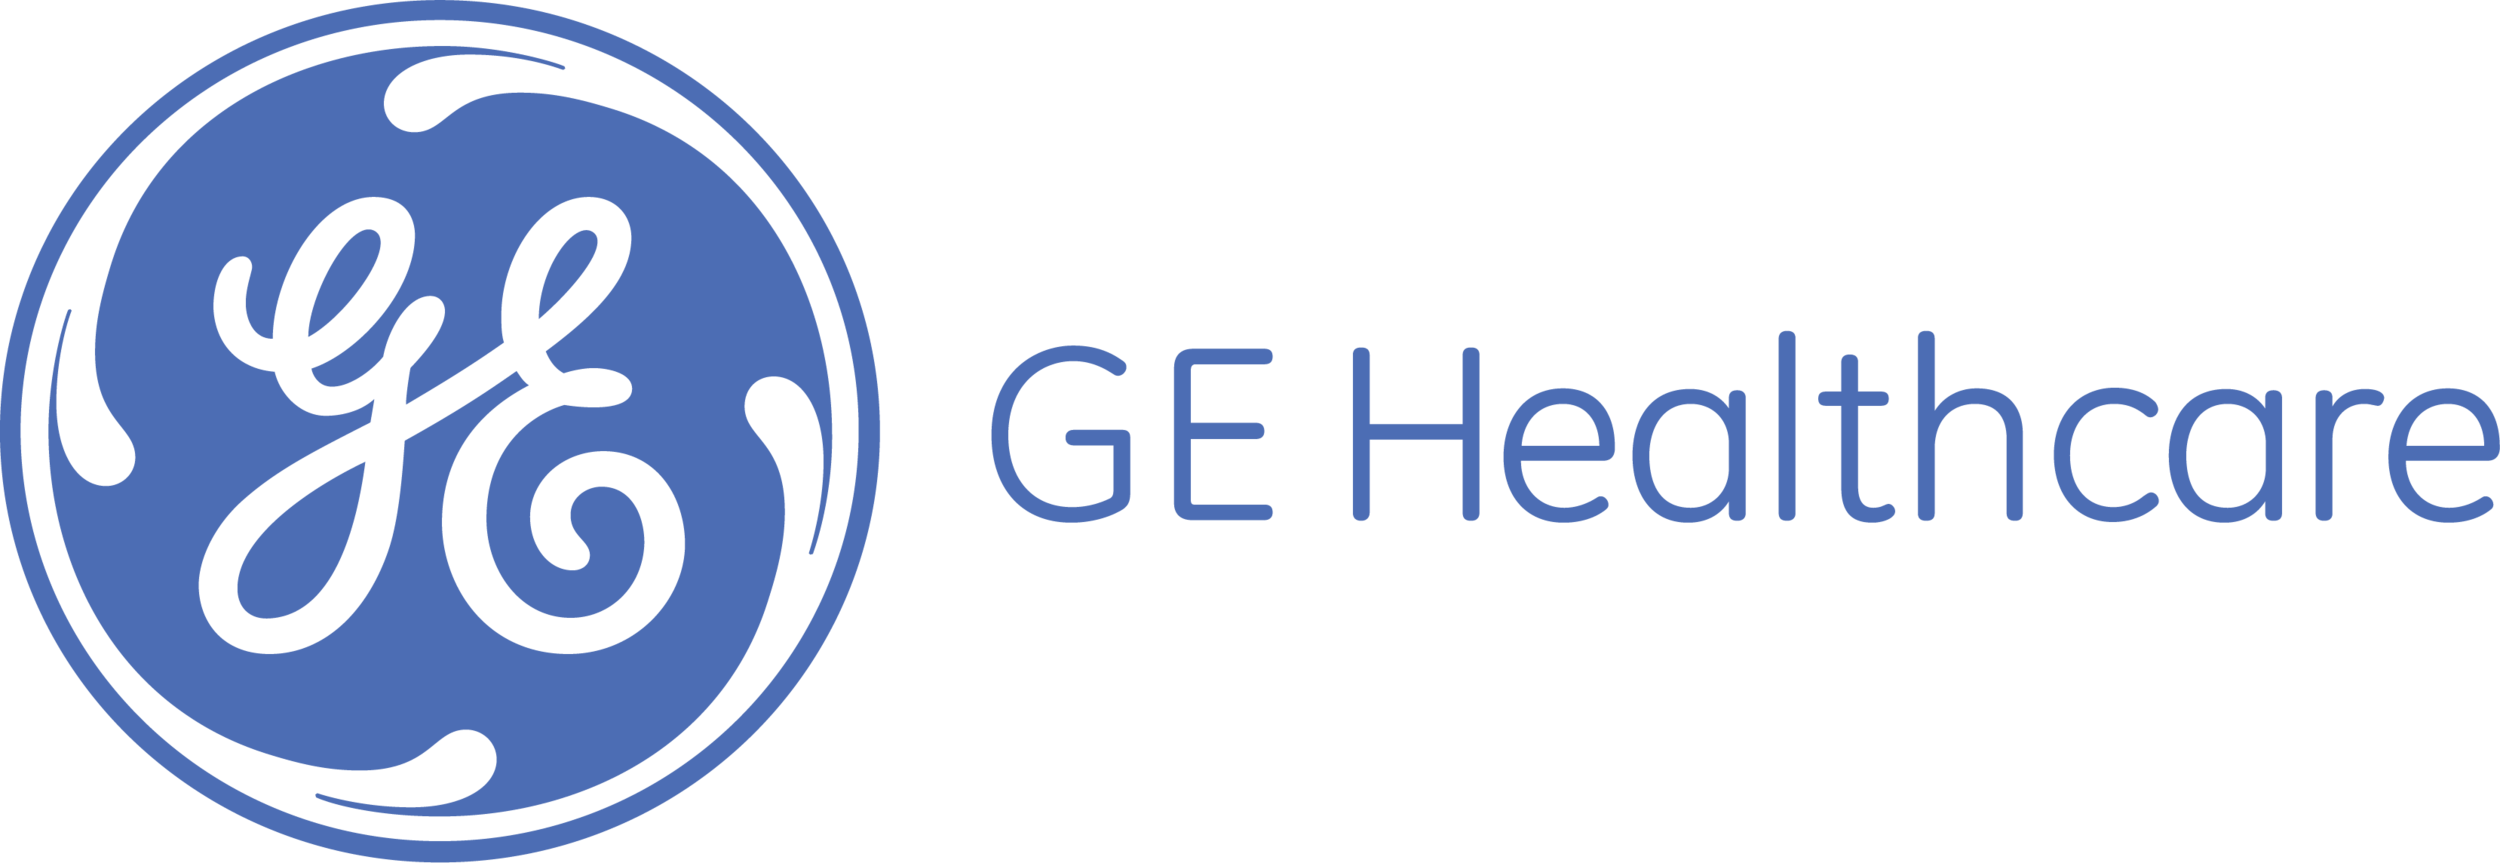 GE Healthcare-addison.png